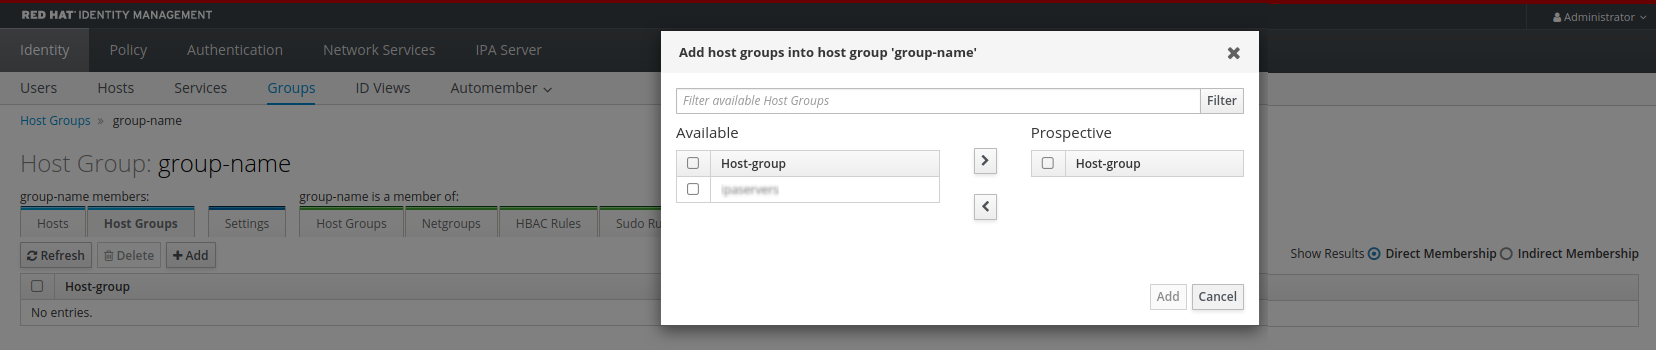 idm adding host group members